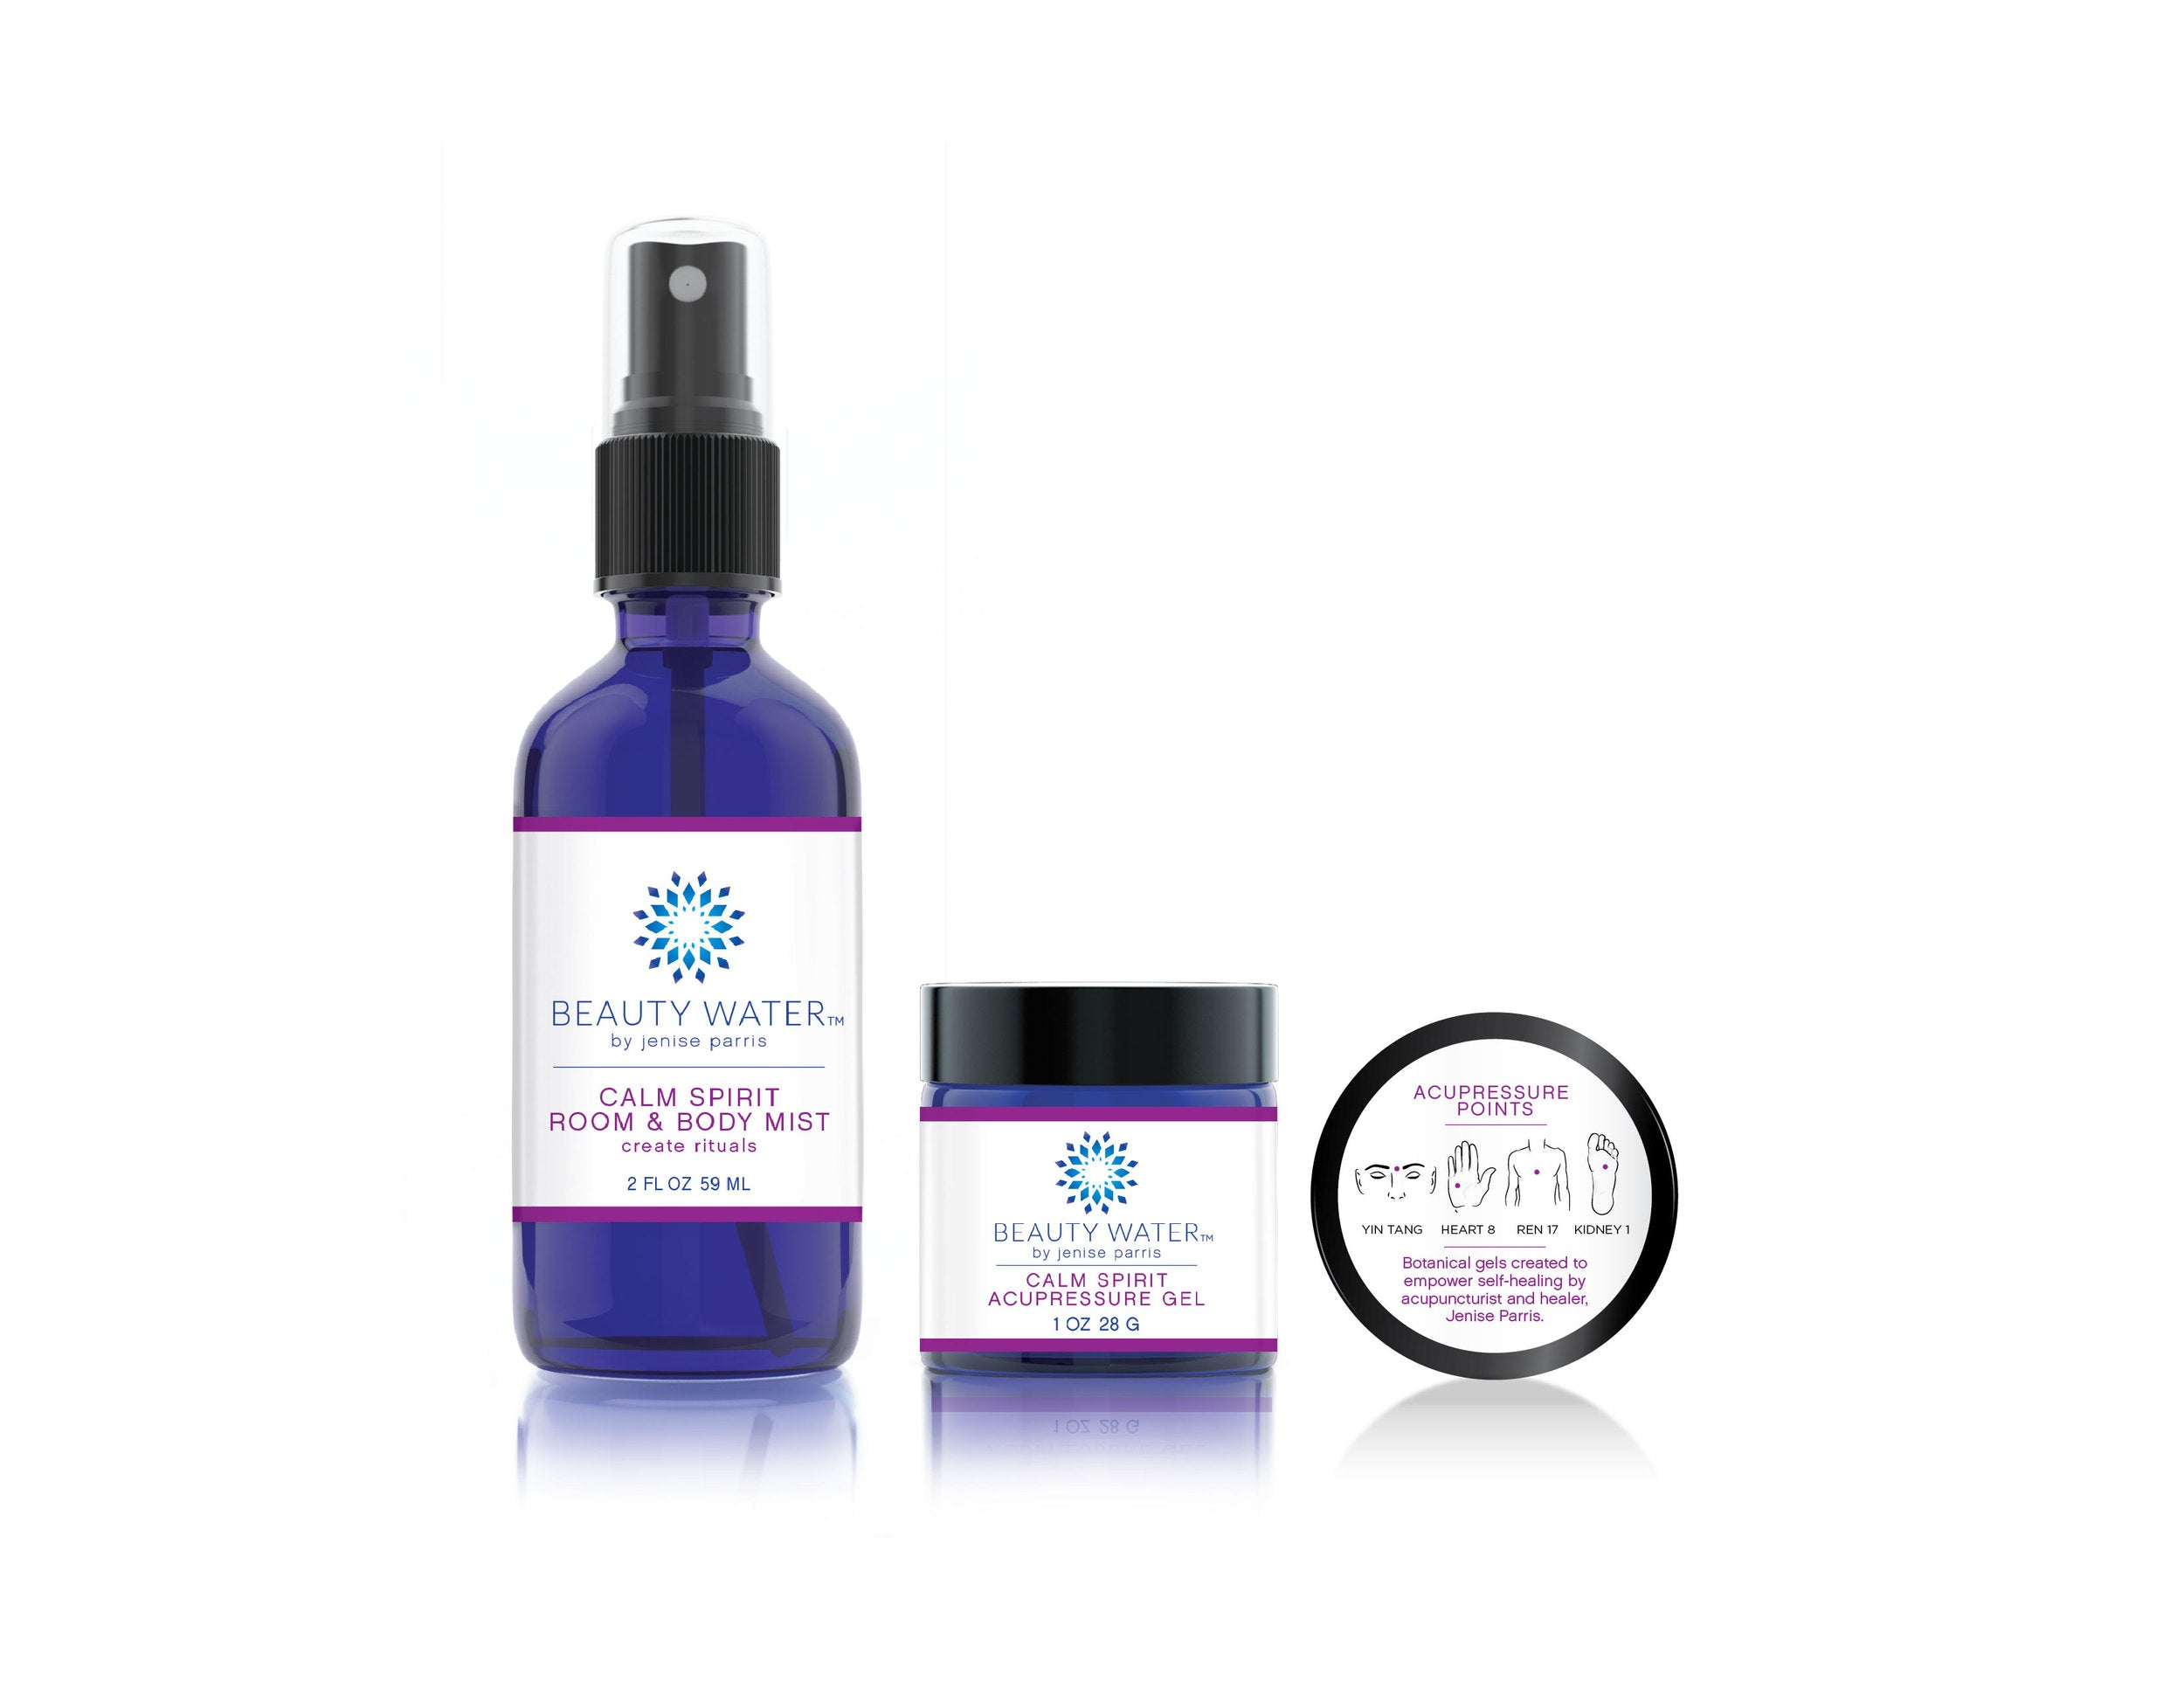 Calm Spirit Body Mist and Acupressure Gel Set